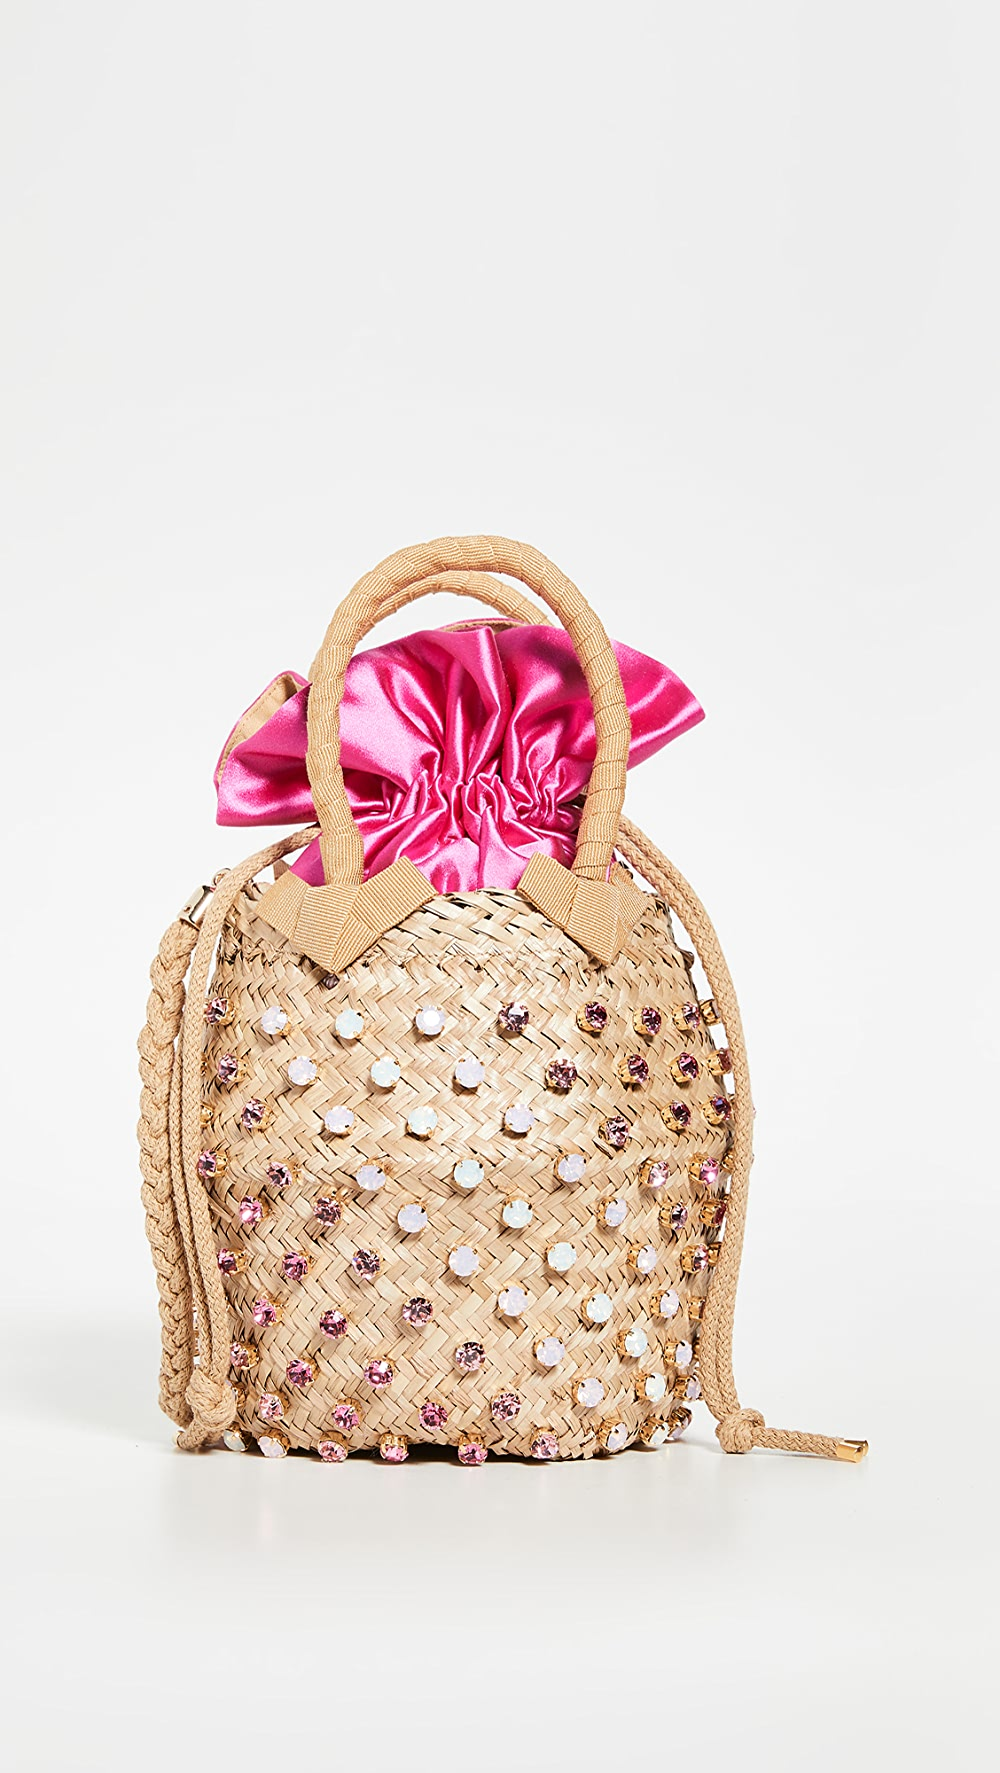 Active Le Nine - Nina Crystal Bag To Win Warm Praise From Customers